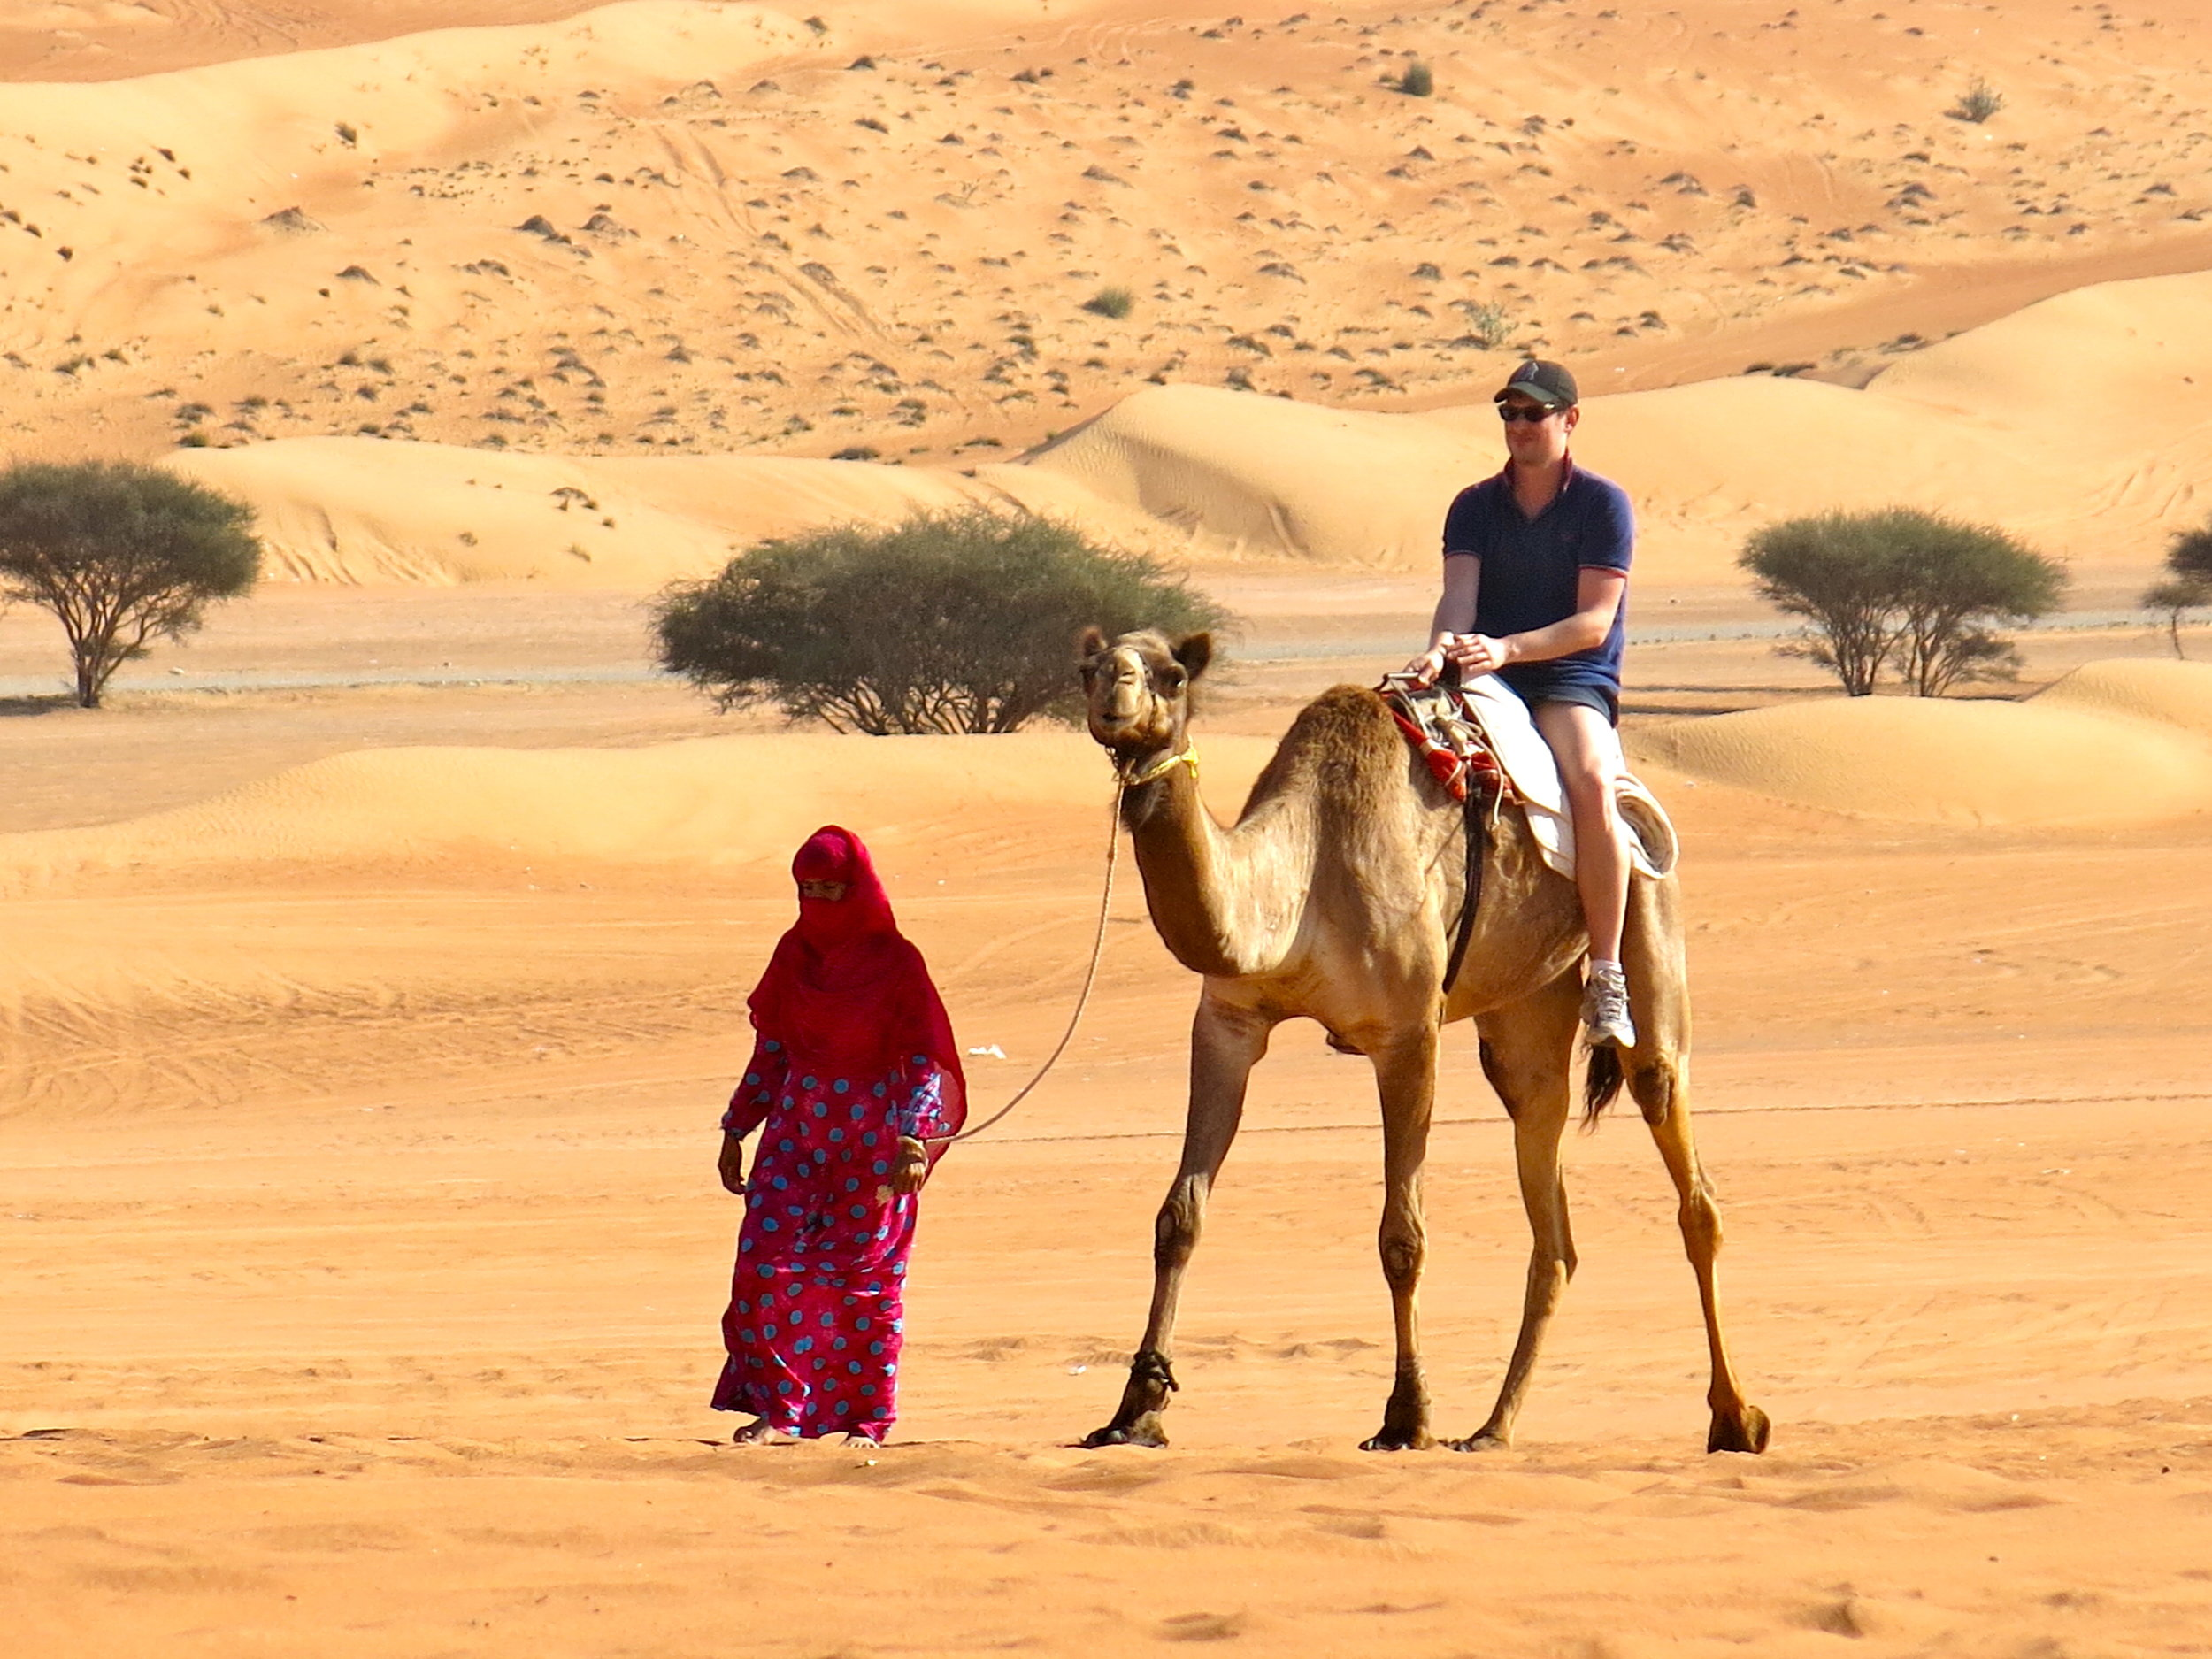 Camel ride with a Beduin woman in the Wahiba Sands desert